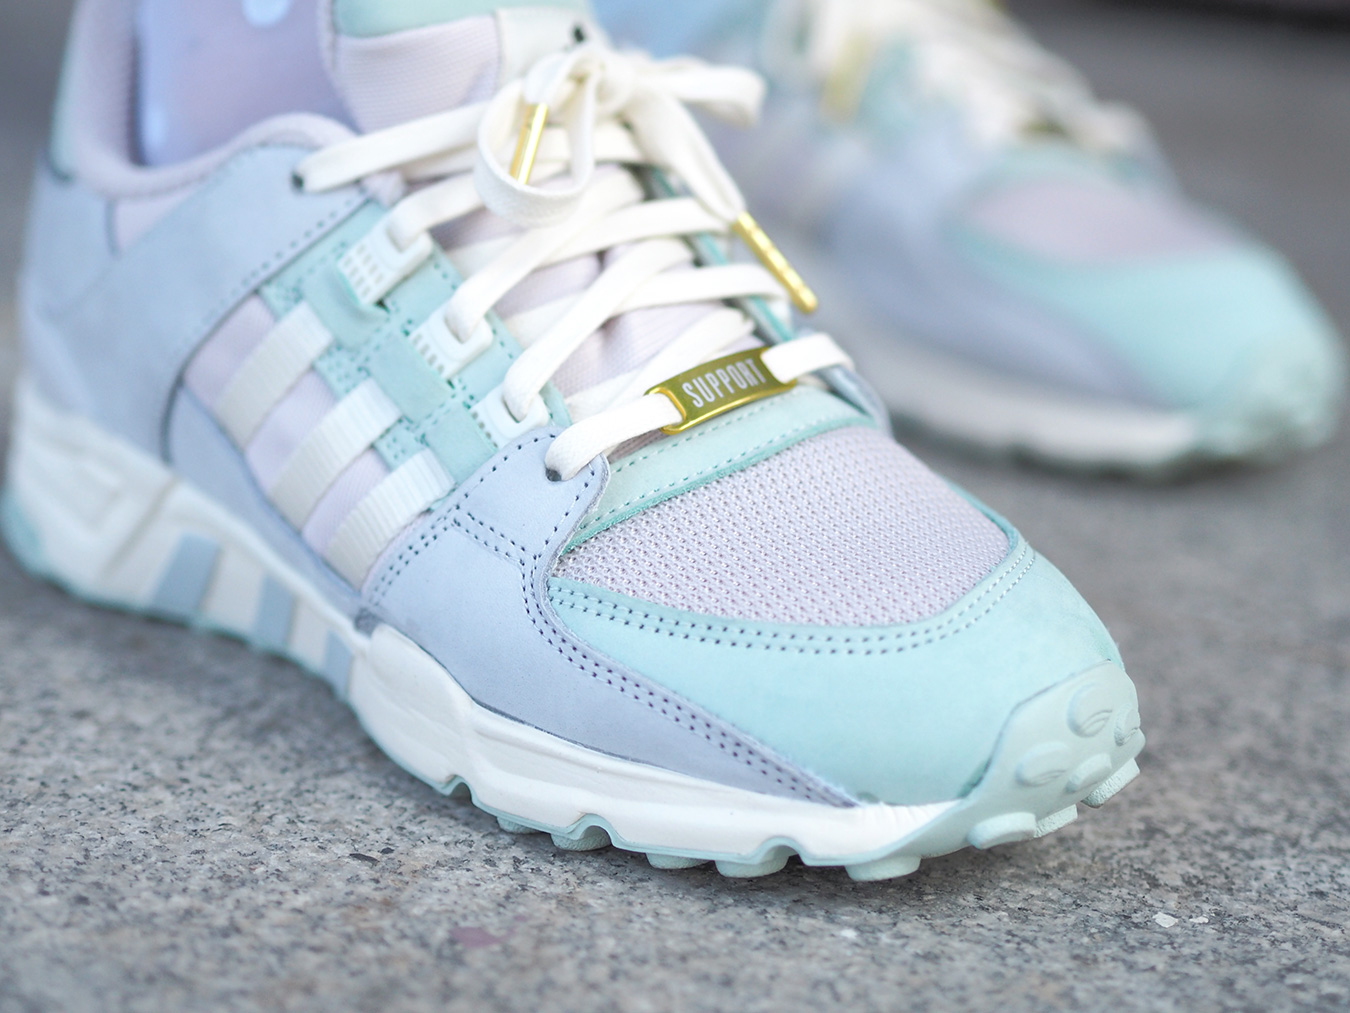 wdywt Adidas mieqt support pastel